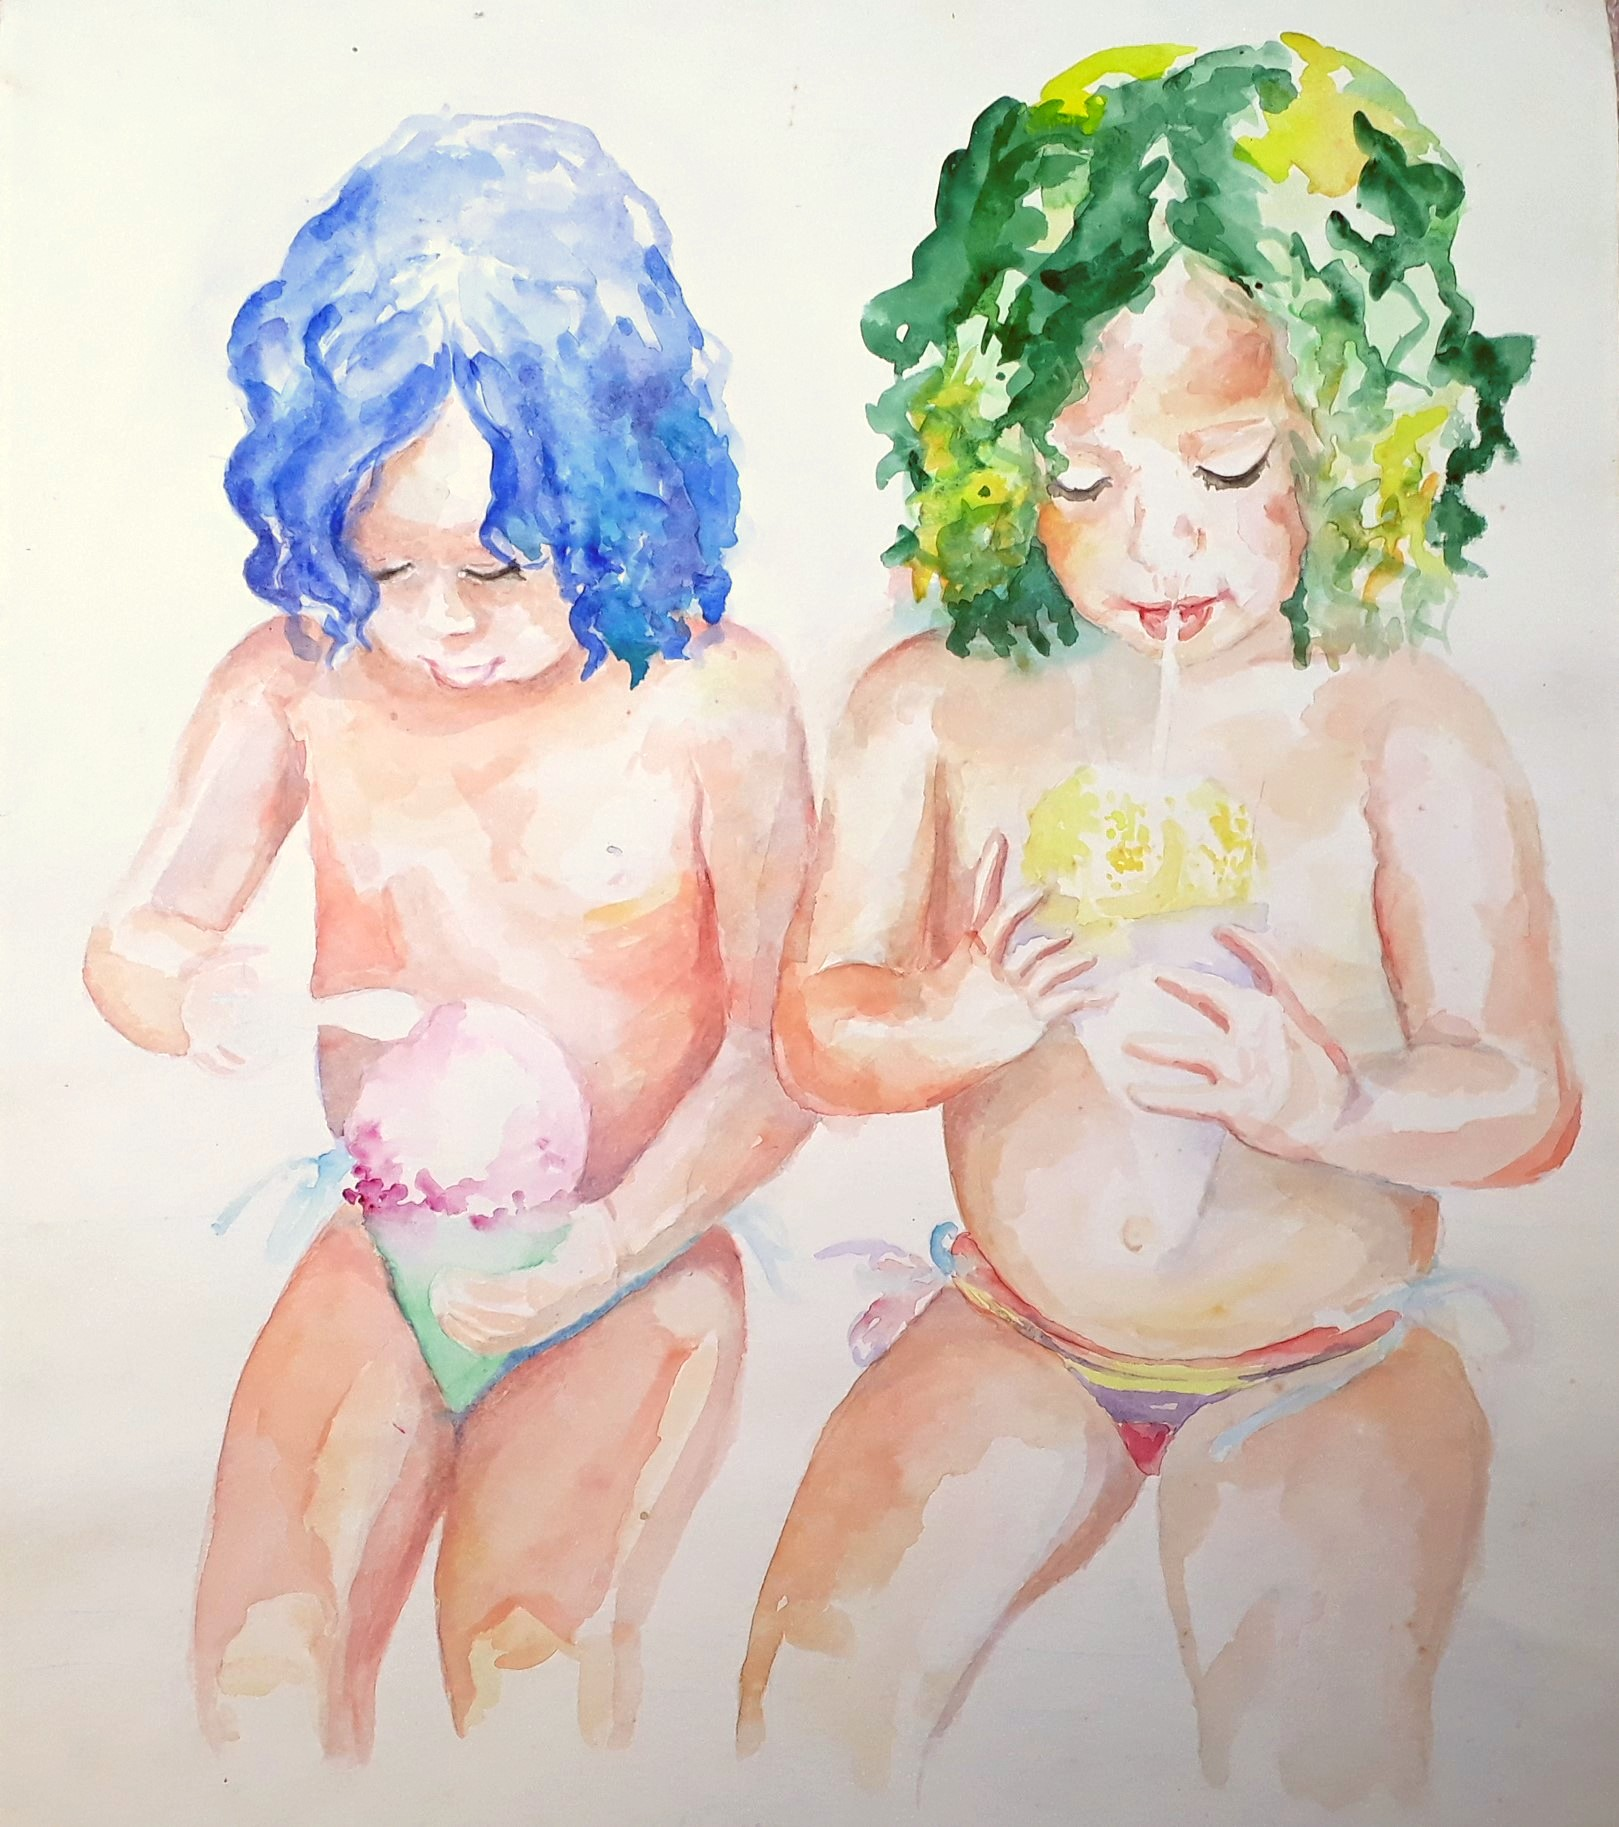 watercolor_ice_cream_girls_florensija_sangijao_2017